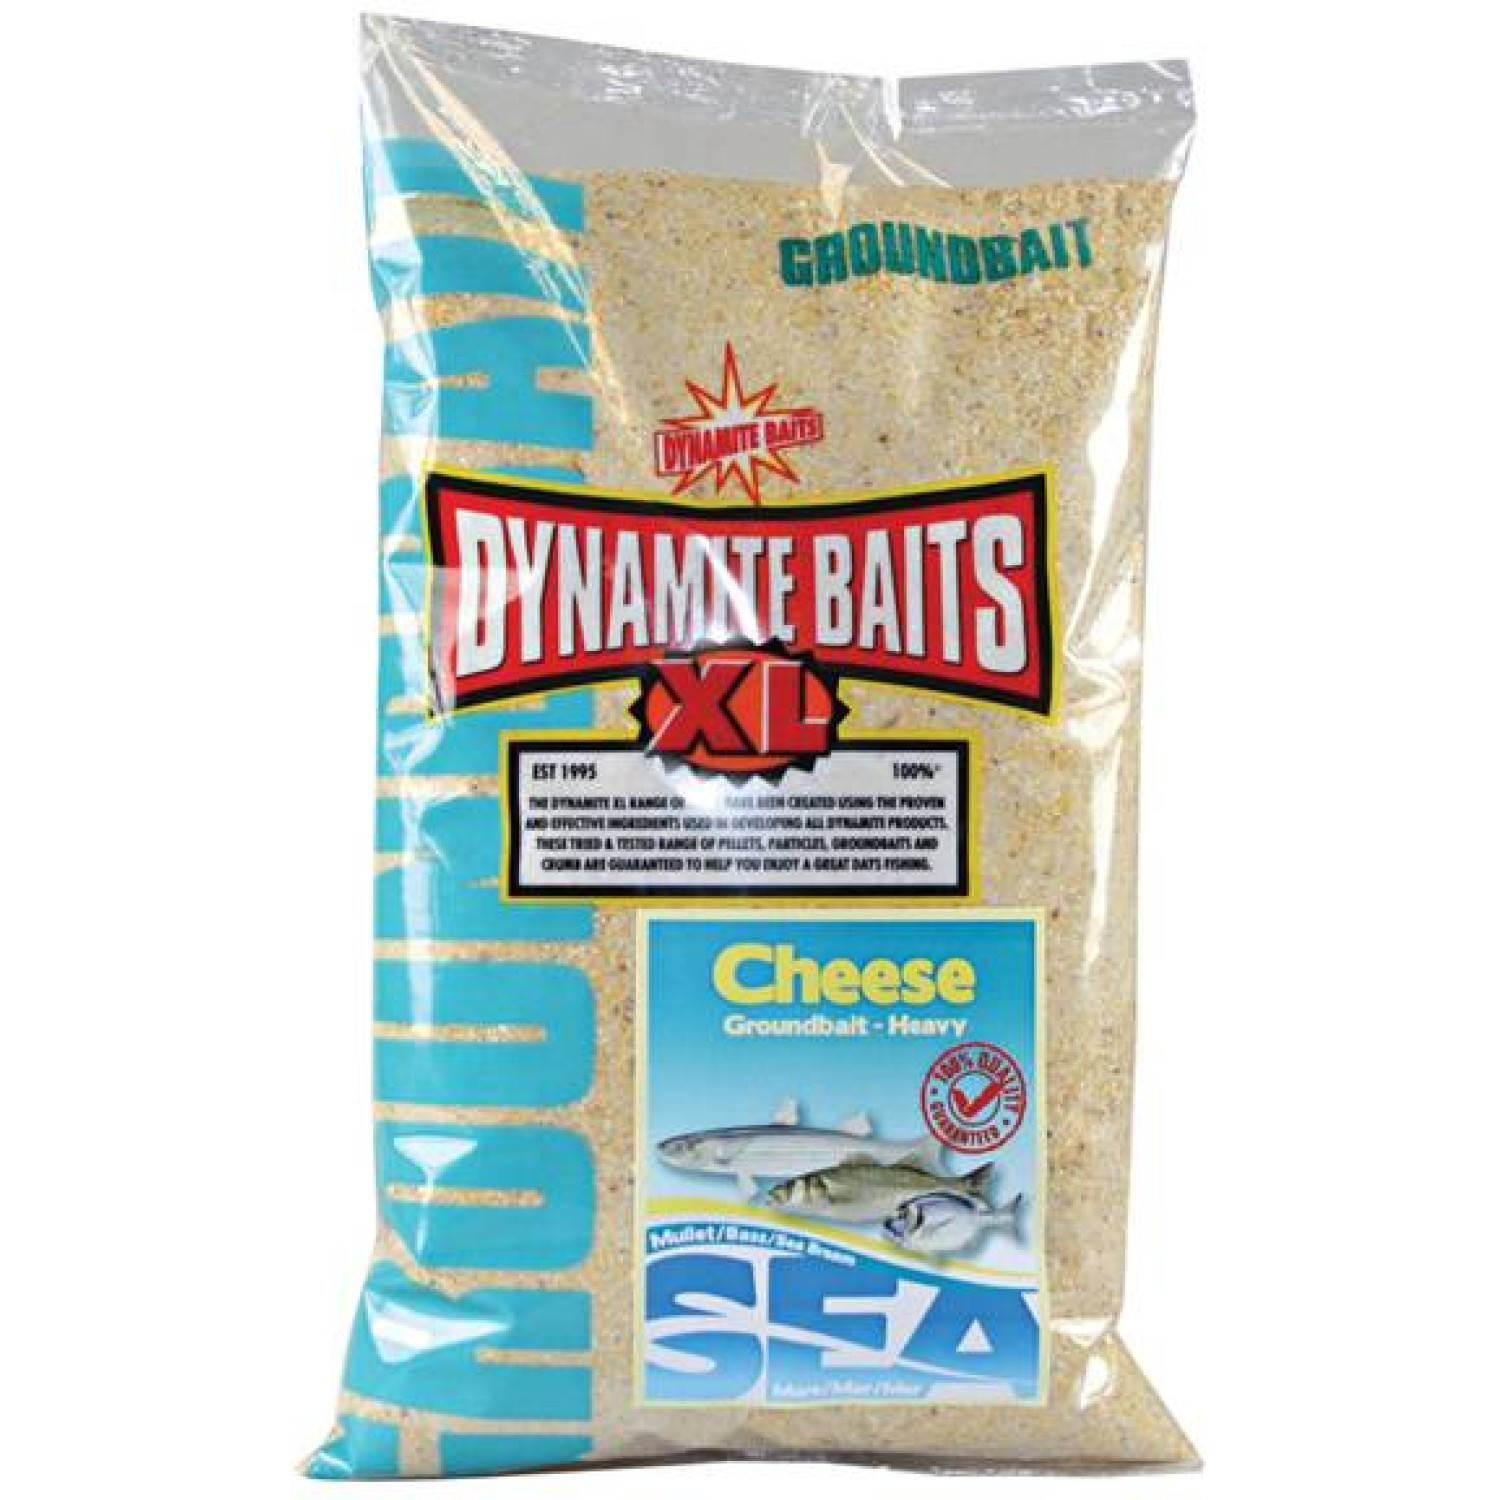 Dynamite Baits Sea Groundbait 1kg